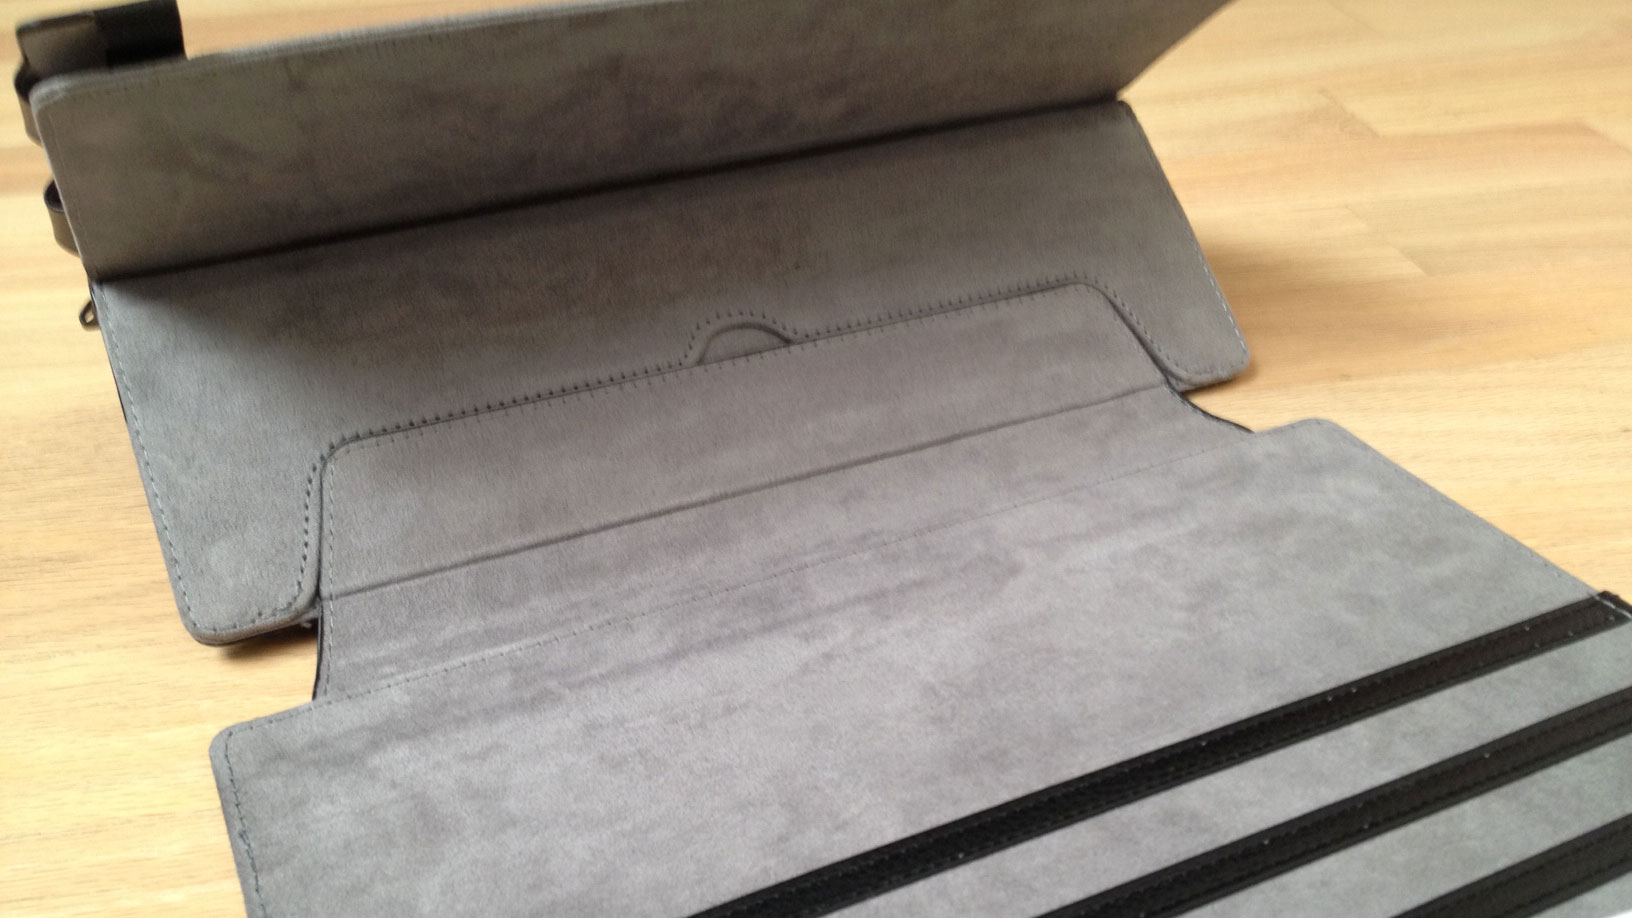 Both covers adhere to the frame with a wide velcro tab. The flap on the frame folds out to provide great stability when the case is opened. The Surface Pro sits much more firmly in one's lap when used in this manner (see gif animation below).